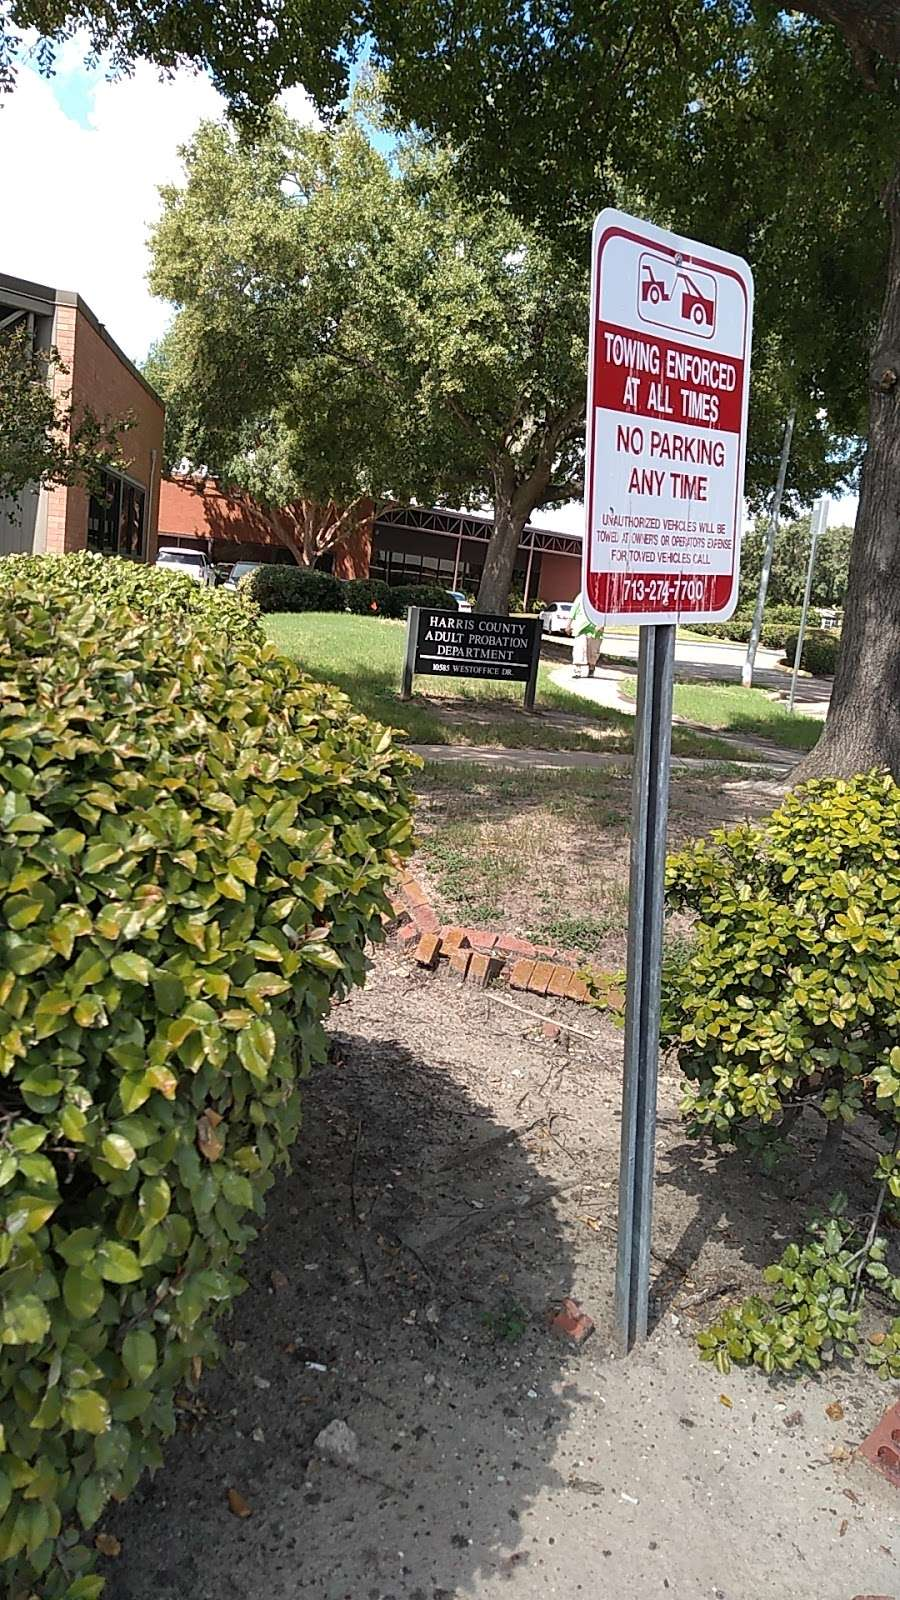 Harris County Corrections Department - local government office    Photo 1 of 7   Address: 10585 Westoffice Dr, Houston, TX 77042, USA   Phone: (713) 953-8200